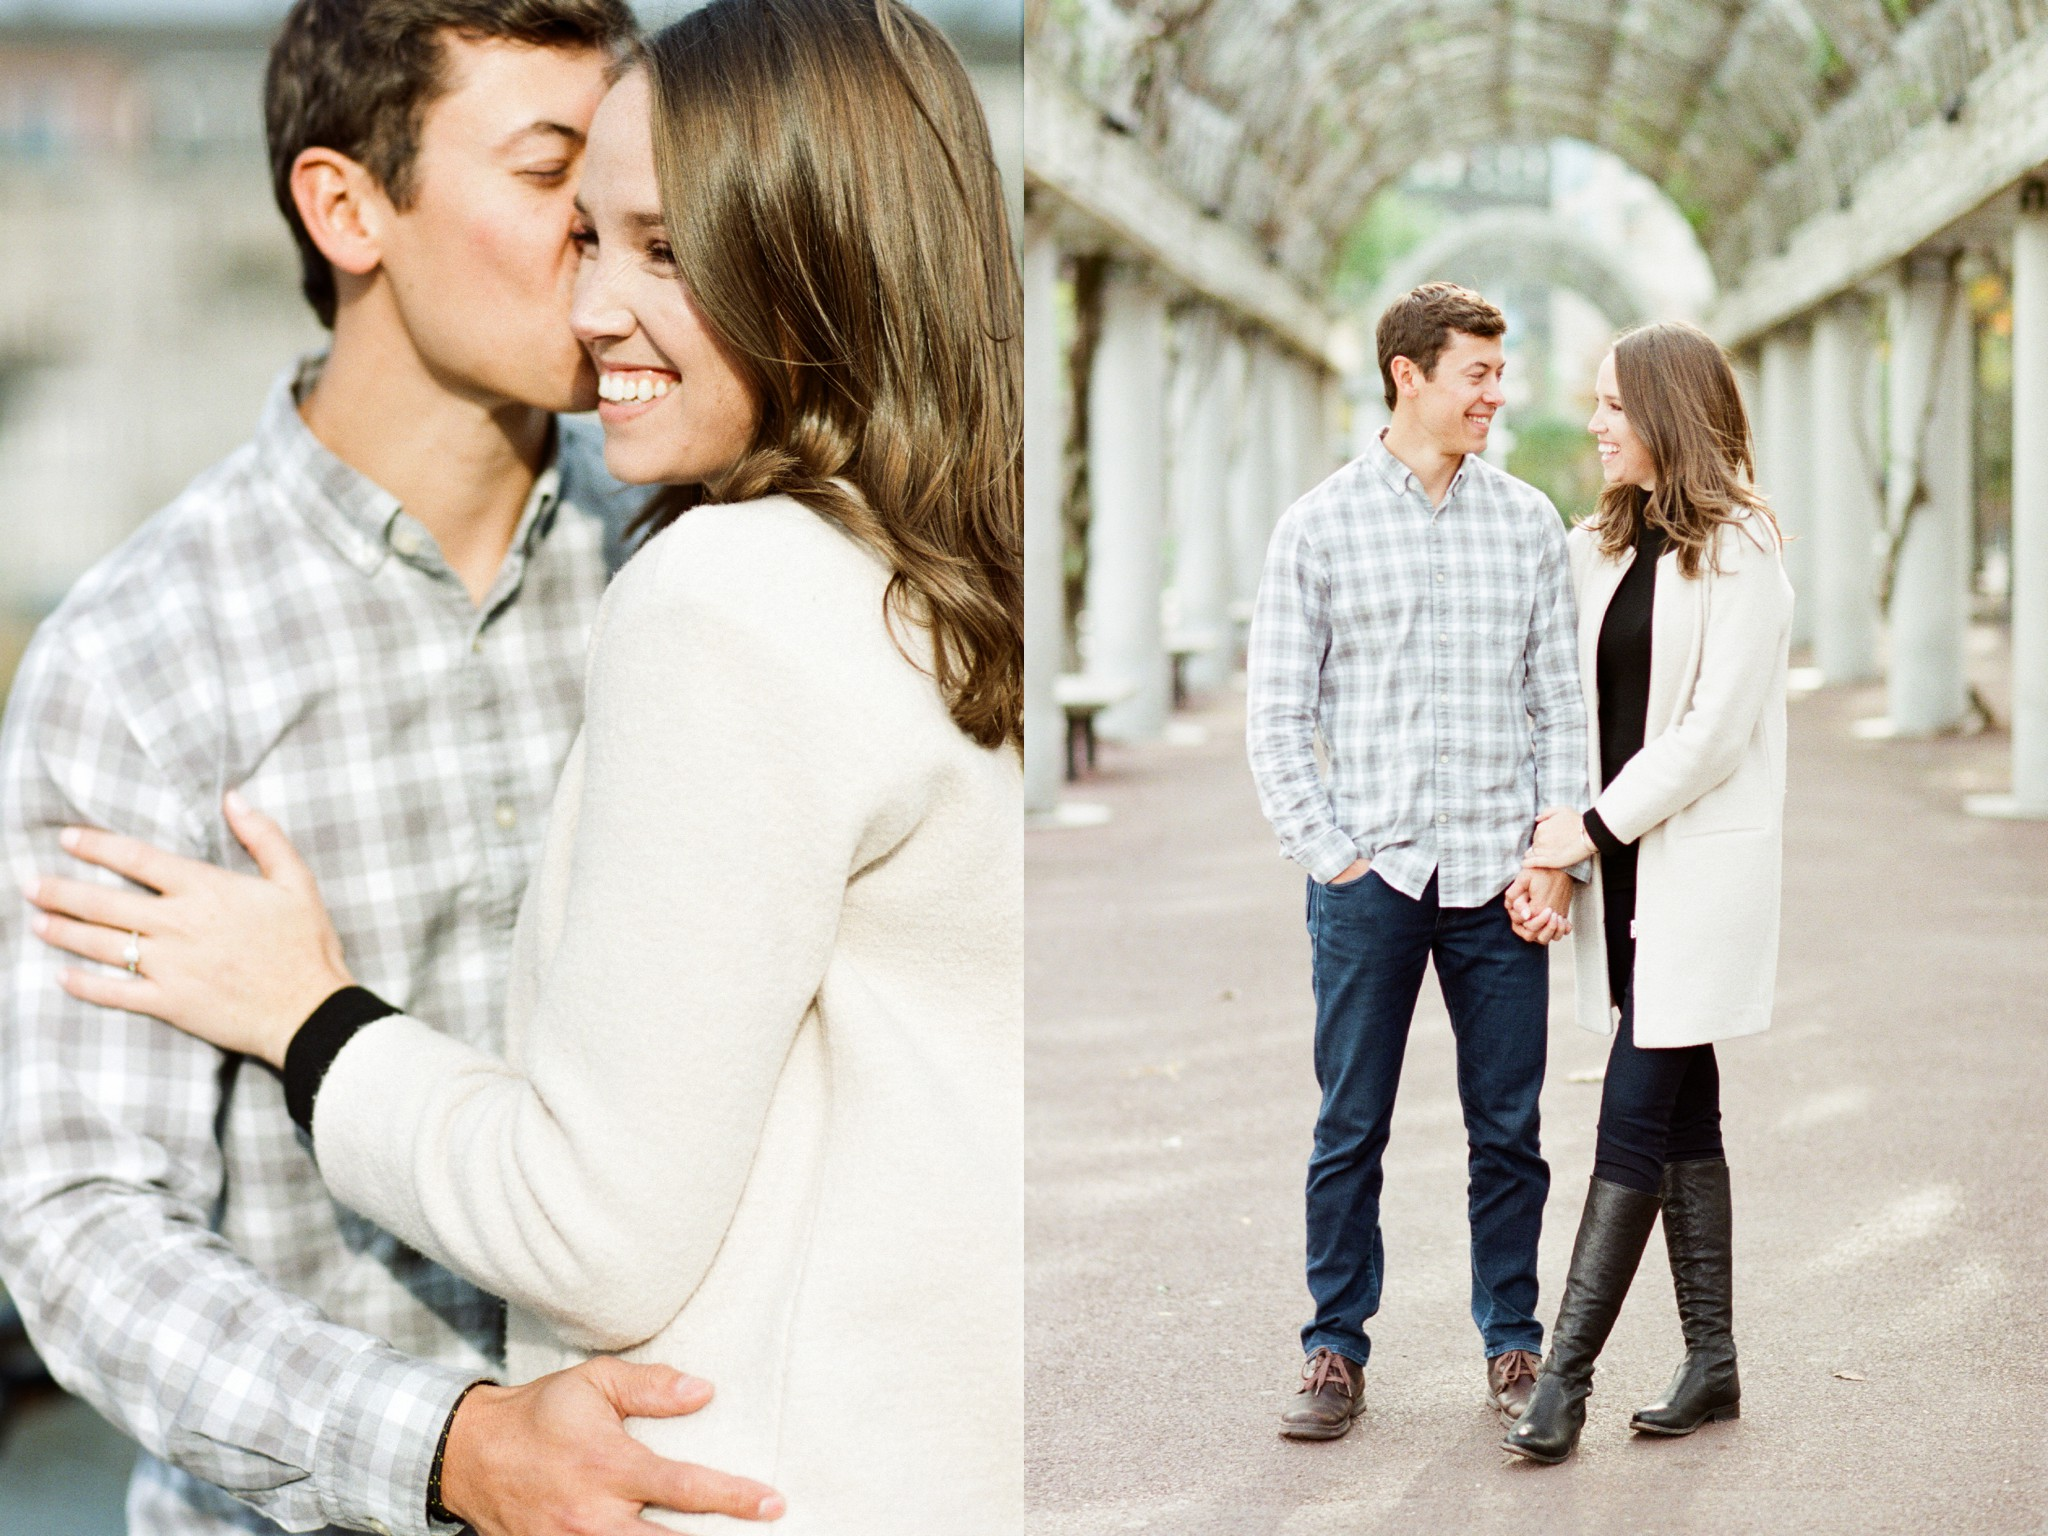 deborah_zoe_photography_engagement_session_0130.JPG